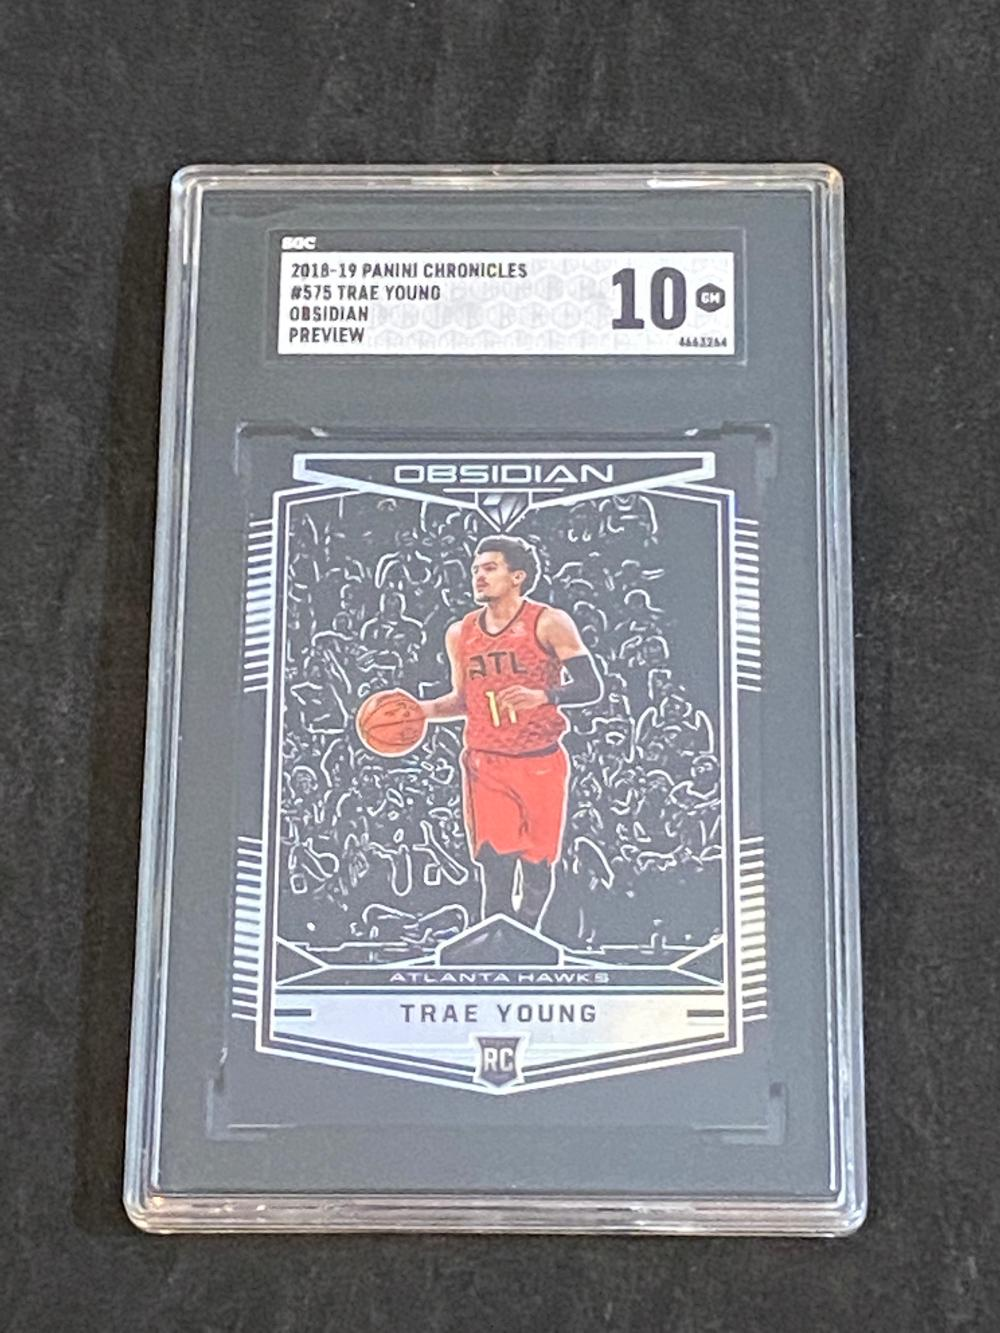 SGC 10 (Gem Mint) 2018-19 Panini Chronicles RC Obsidian Preview Prizm Trae Young Rookie #575 Basketball Card